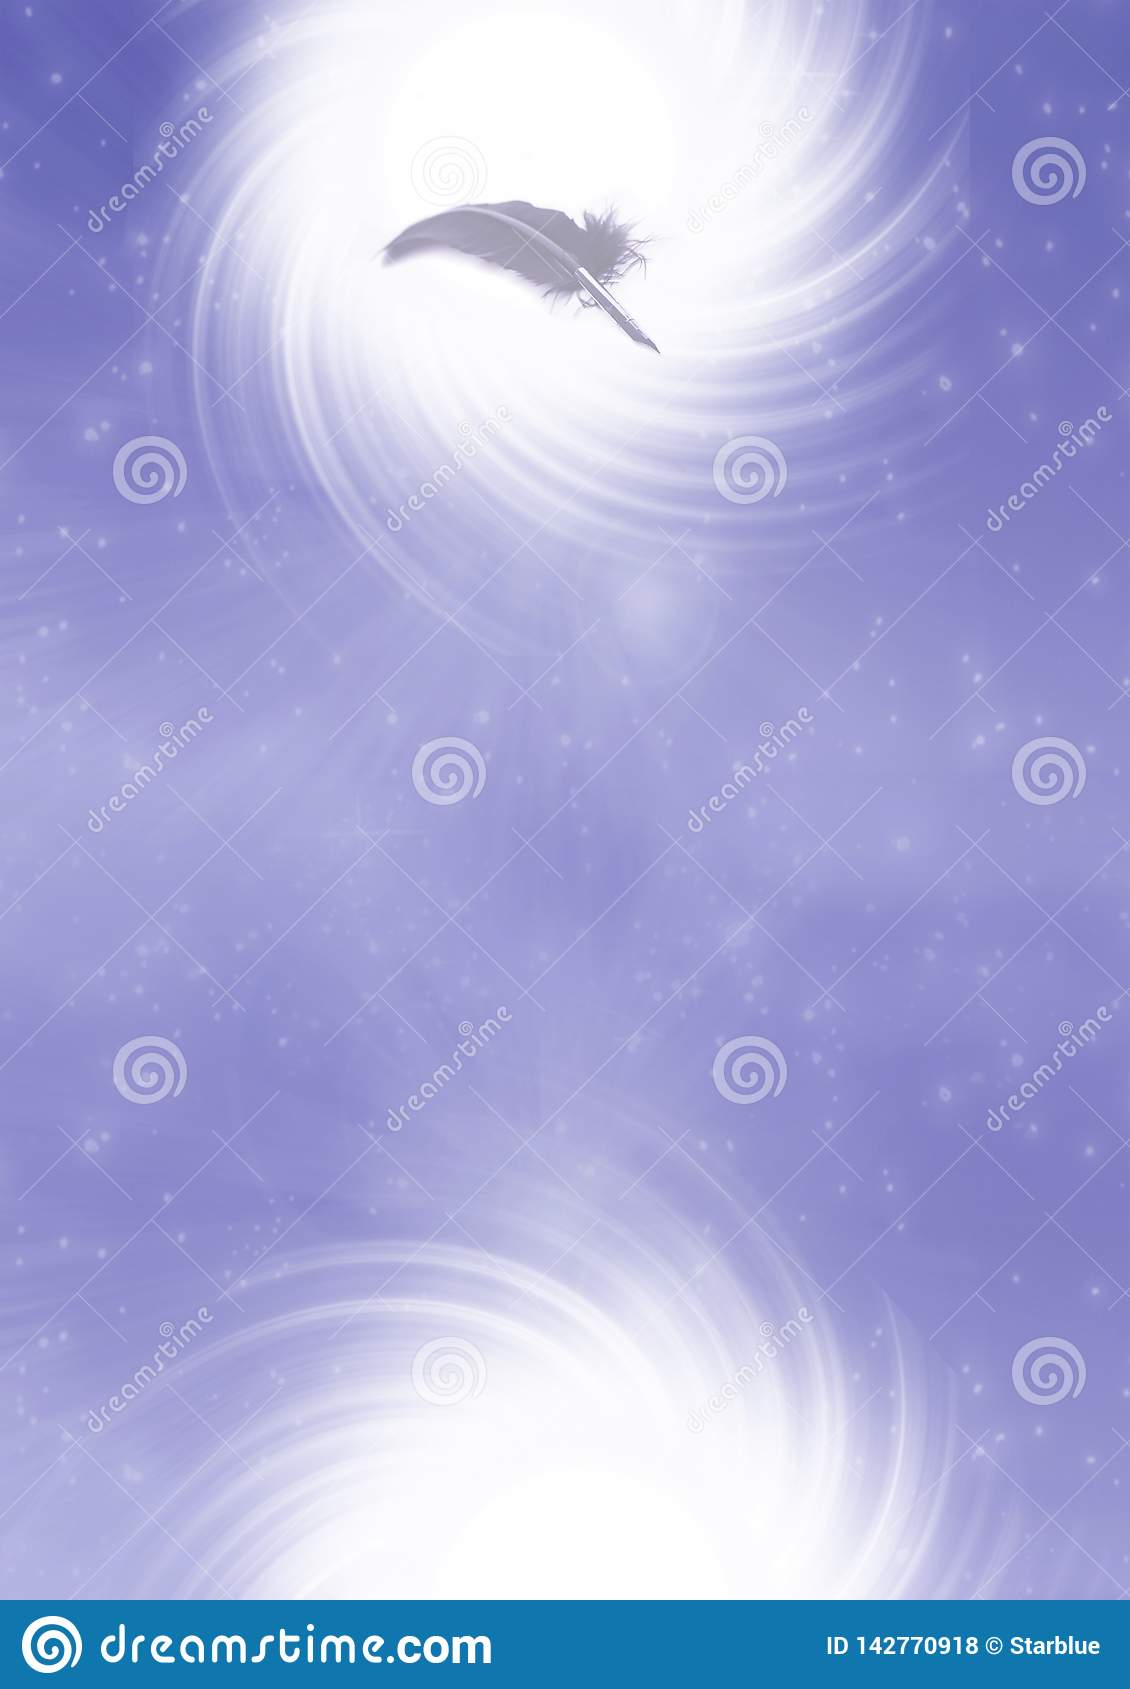 Feather quill pen in white whirl and purple background like mystical, writer, spiritual, creativity concept